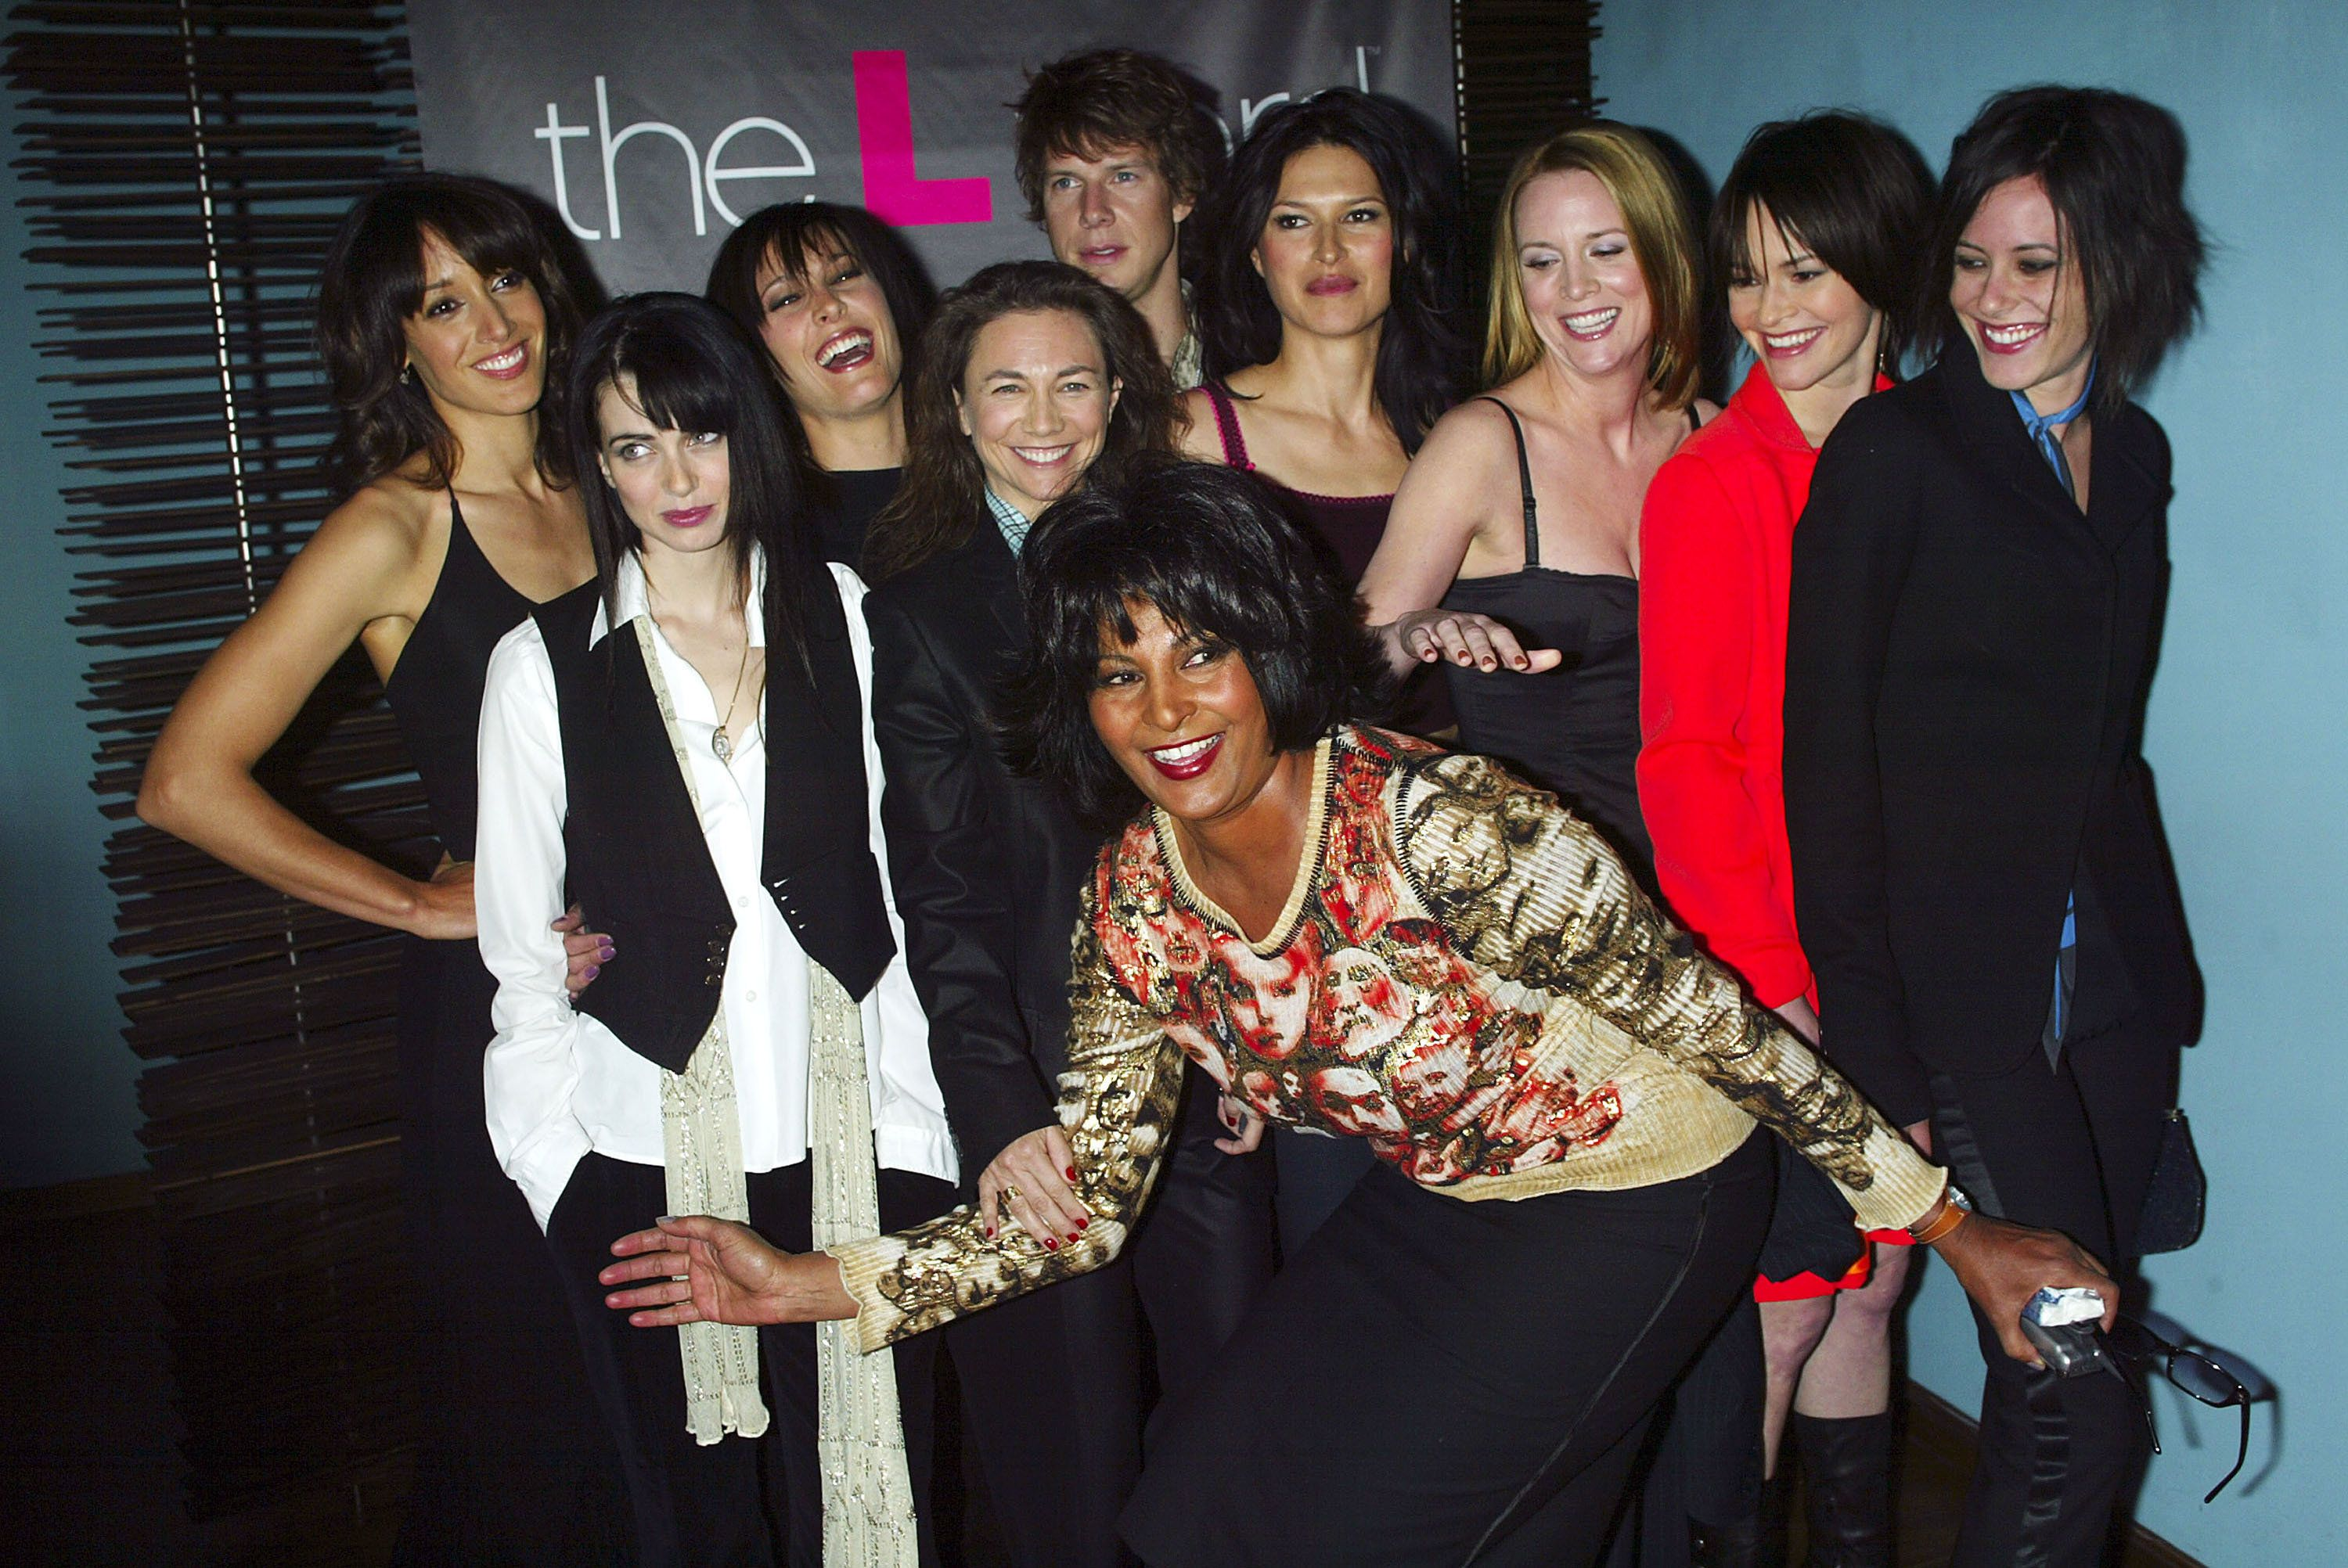 NEW YORK - OCTOBER 23:  (HOLLYWOOD REPORTER & U.S. TABS OUT)  Cast members Jennifer Beals, Pam Grier, Erin Daniels, Leisha Hailey, Laurel Holloman, Mia Kirshner, Karina Lombard, Eric Mabius, Katherine Moennig and Executive Producer Ilene Chaiken at a preview luncheon for Showtime's new original series 'The L Word' at Blue Fin October 23, 2003 in New York City.  (Photo by Scott Gries/Getty Images)